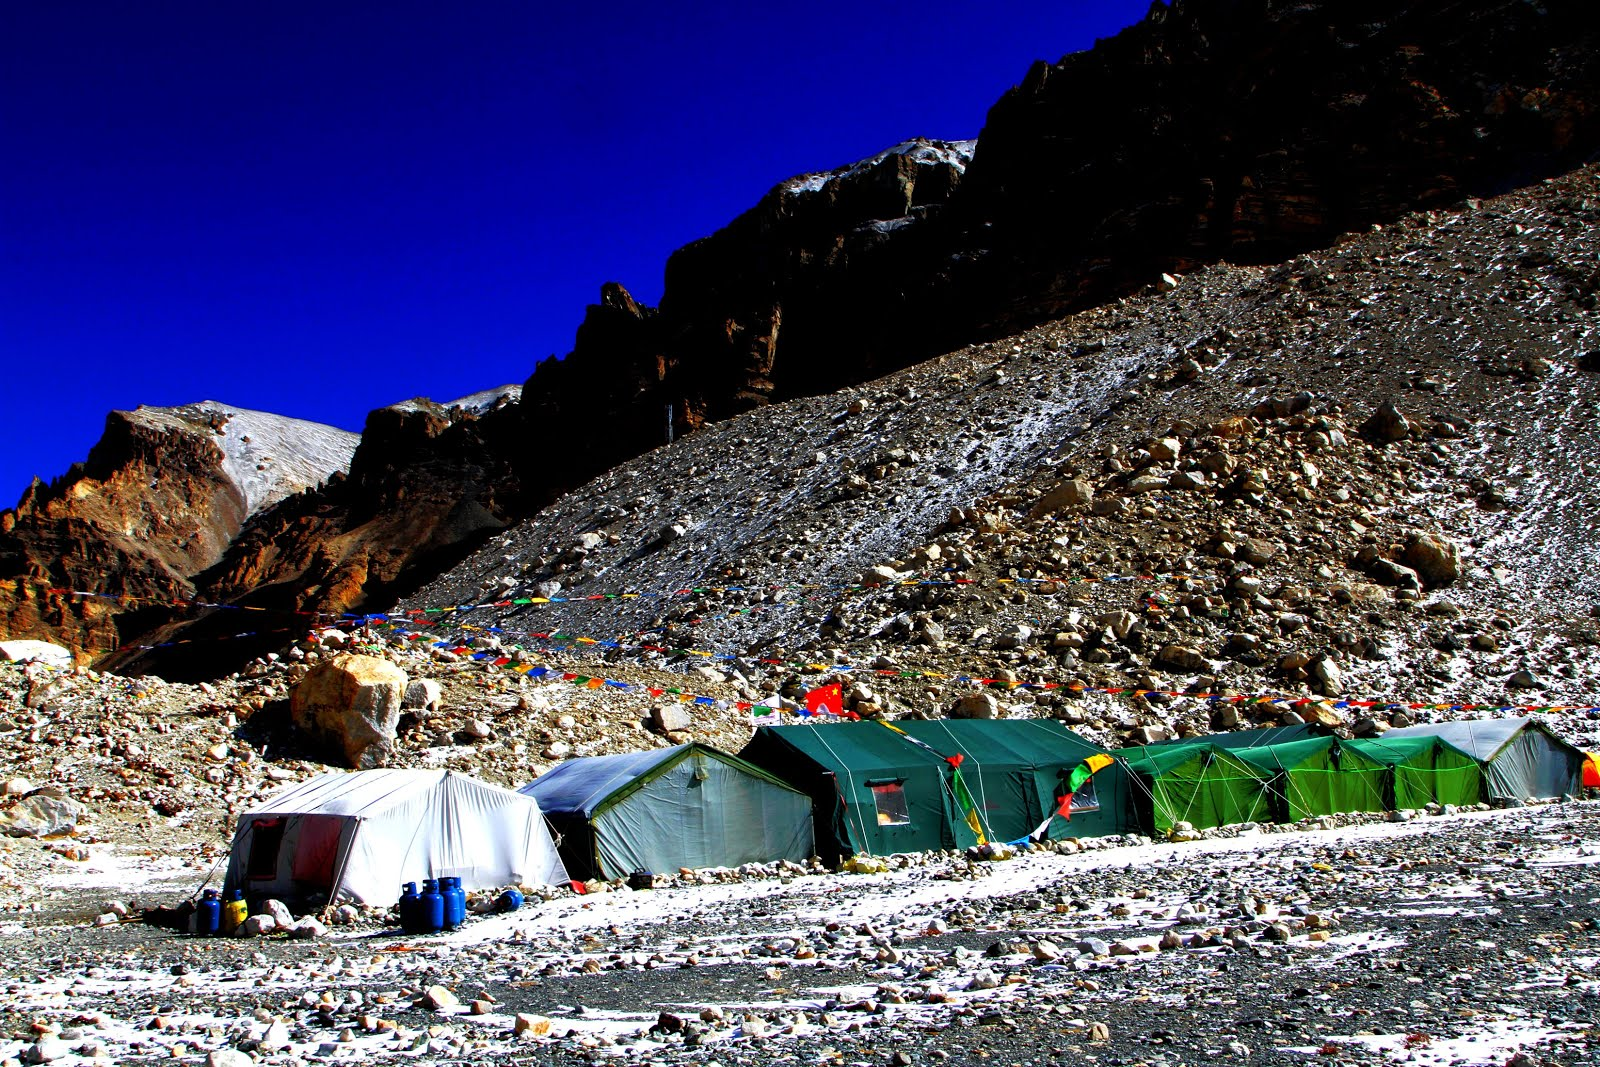 You can choose camping at Everest base camp.